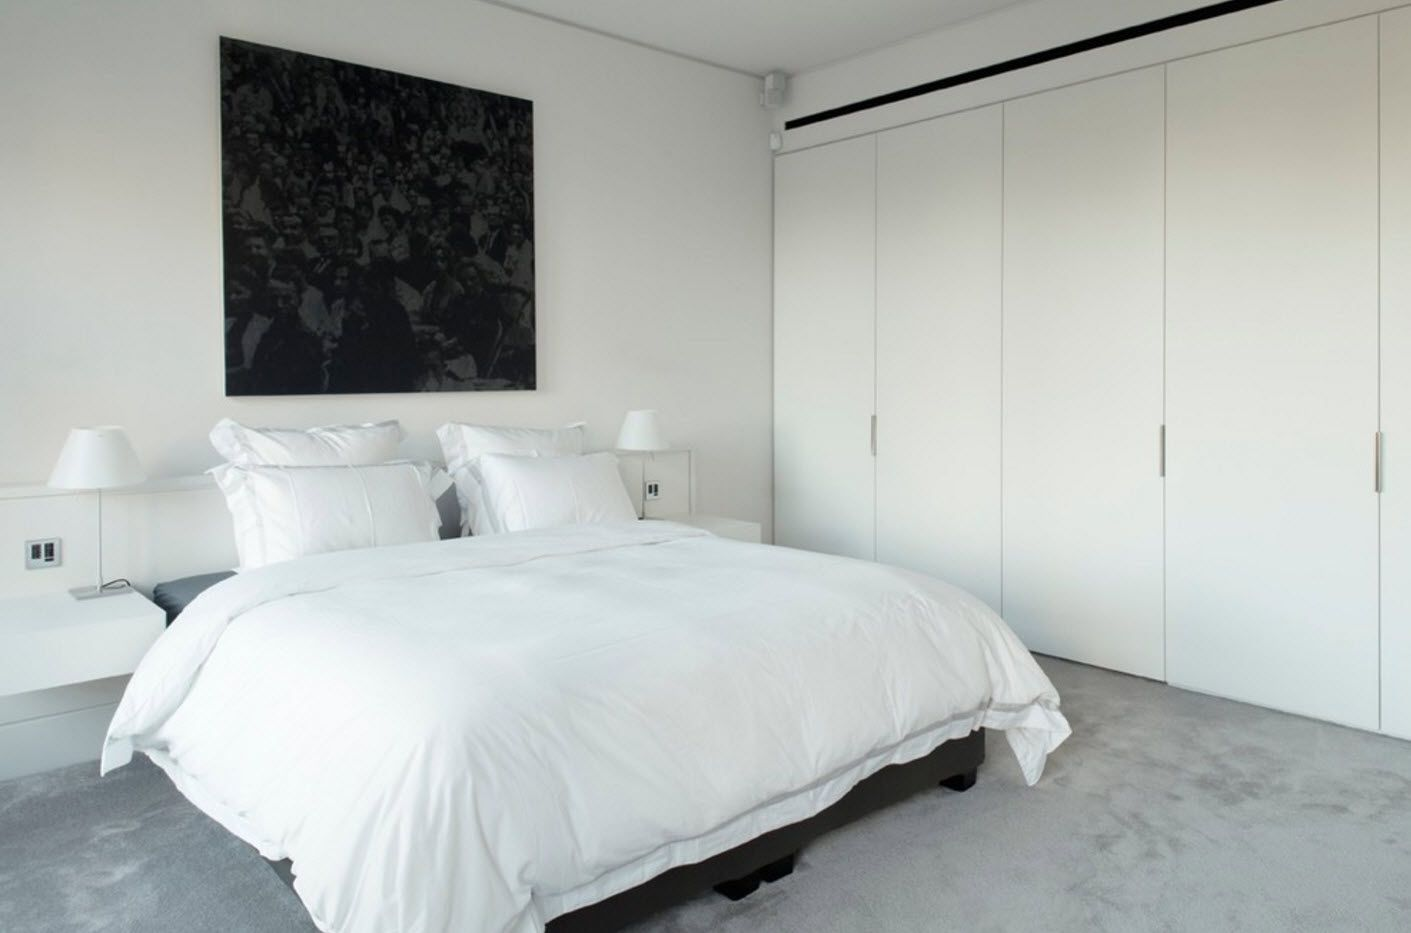 Apartment Interior Design Inspiration Ideas & Trends 2017. Totally white interior with black inlays for modern bedroom